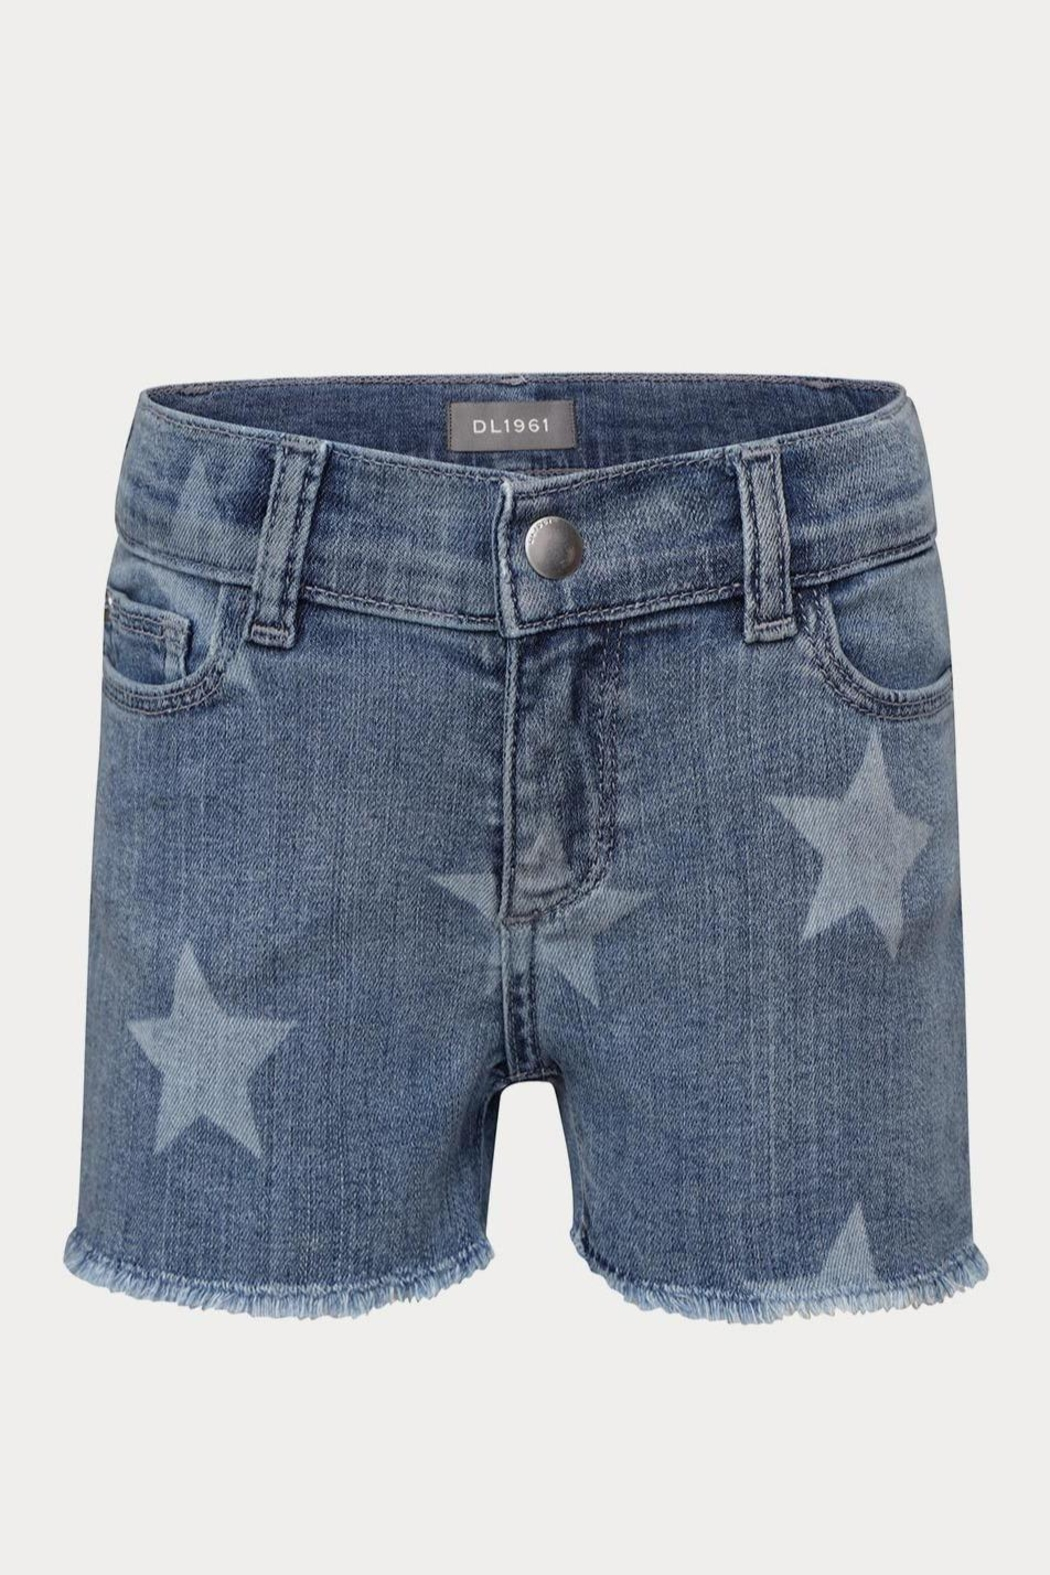 DL 1961 Stars Lucy Shorts - Main Image